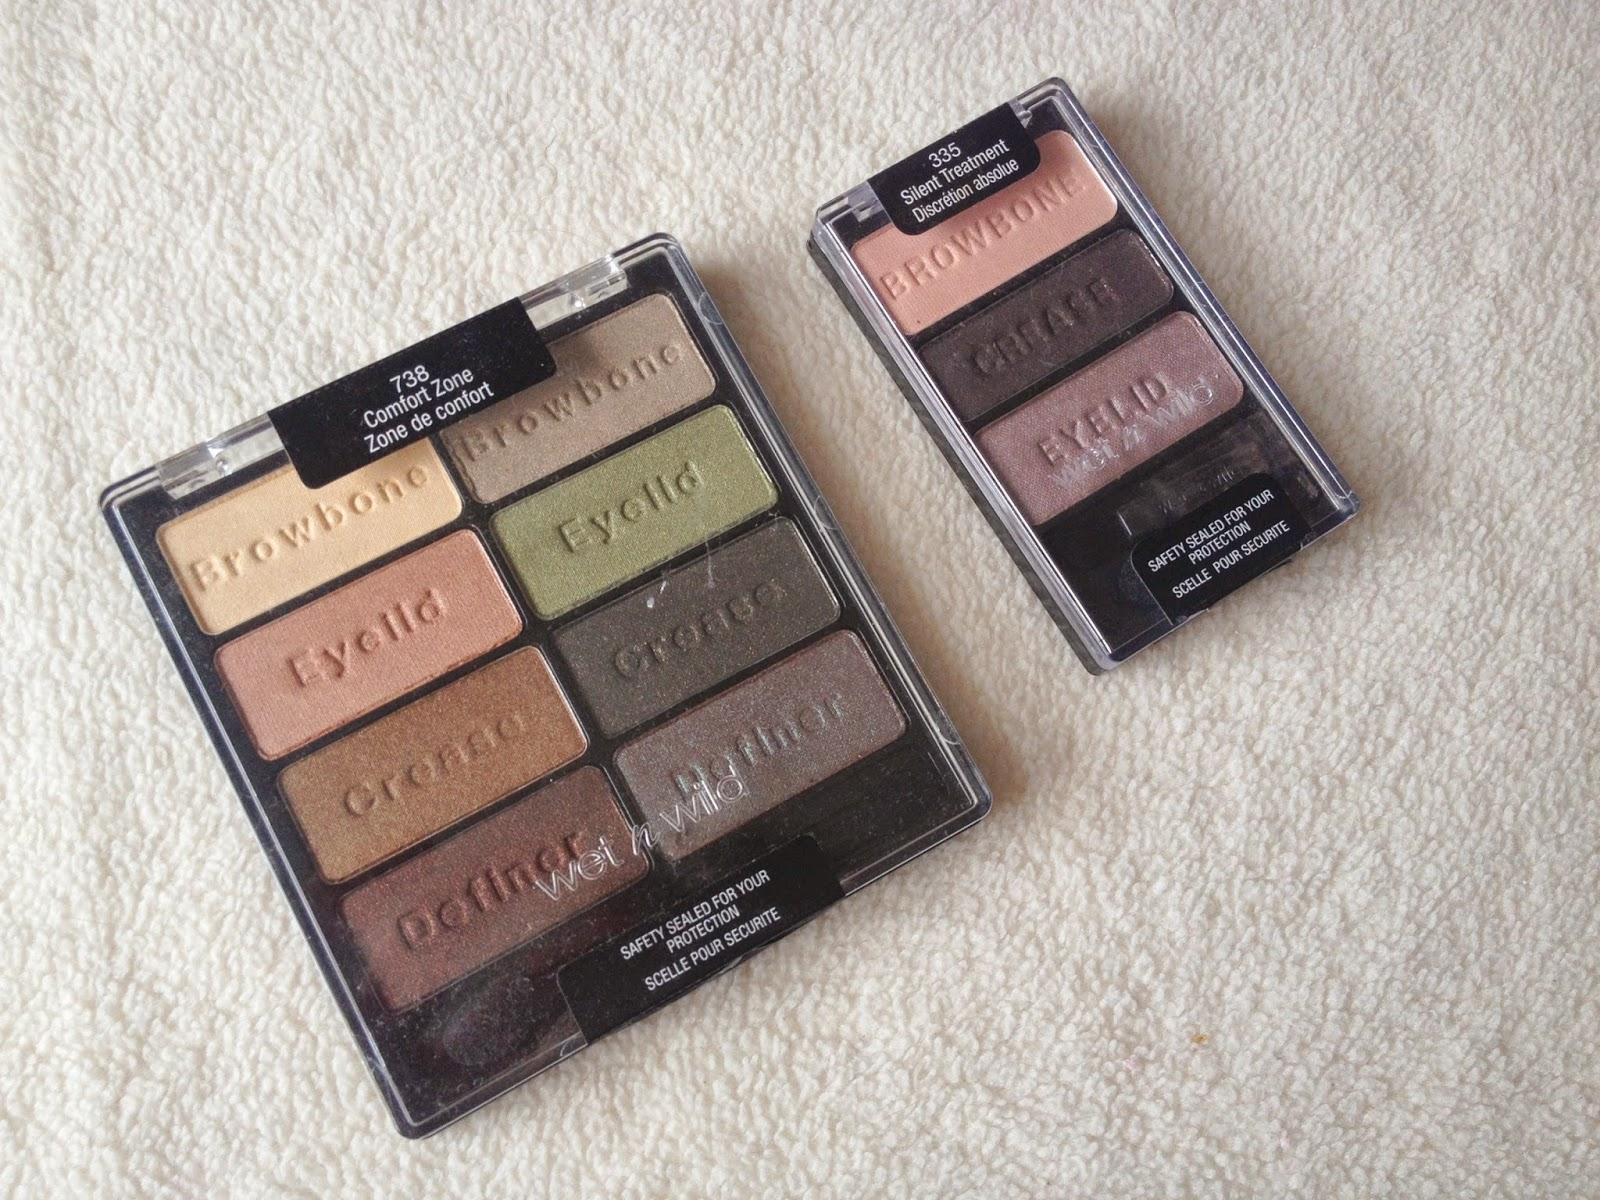 Wet n Wild Comfort Zone Colouricon Palette and Silent Treatment Trio